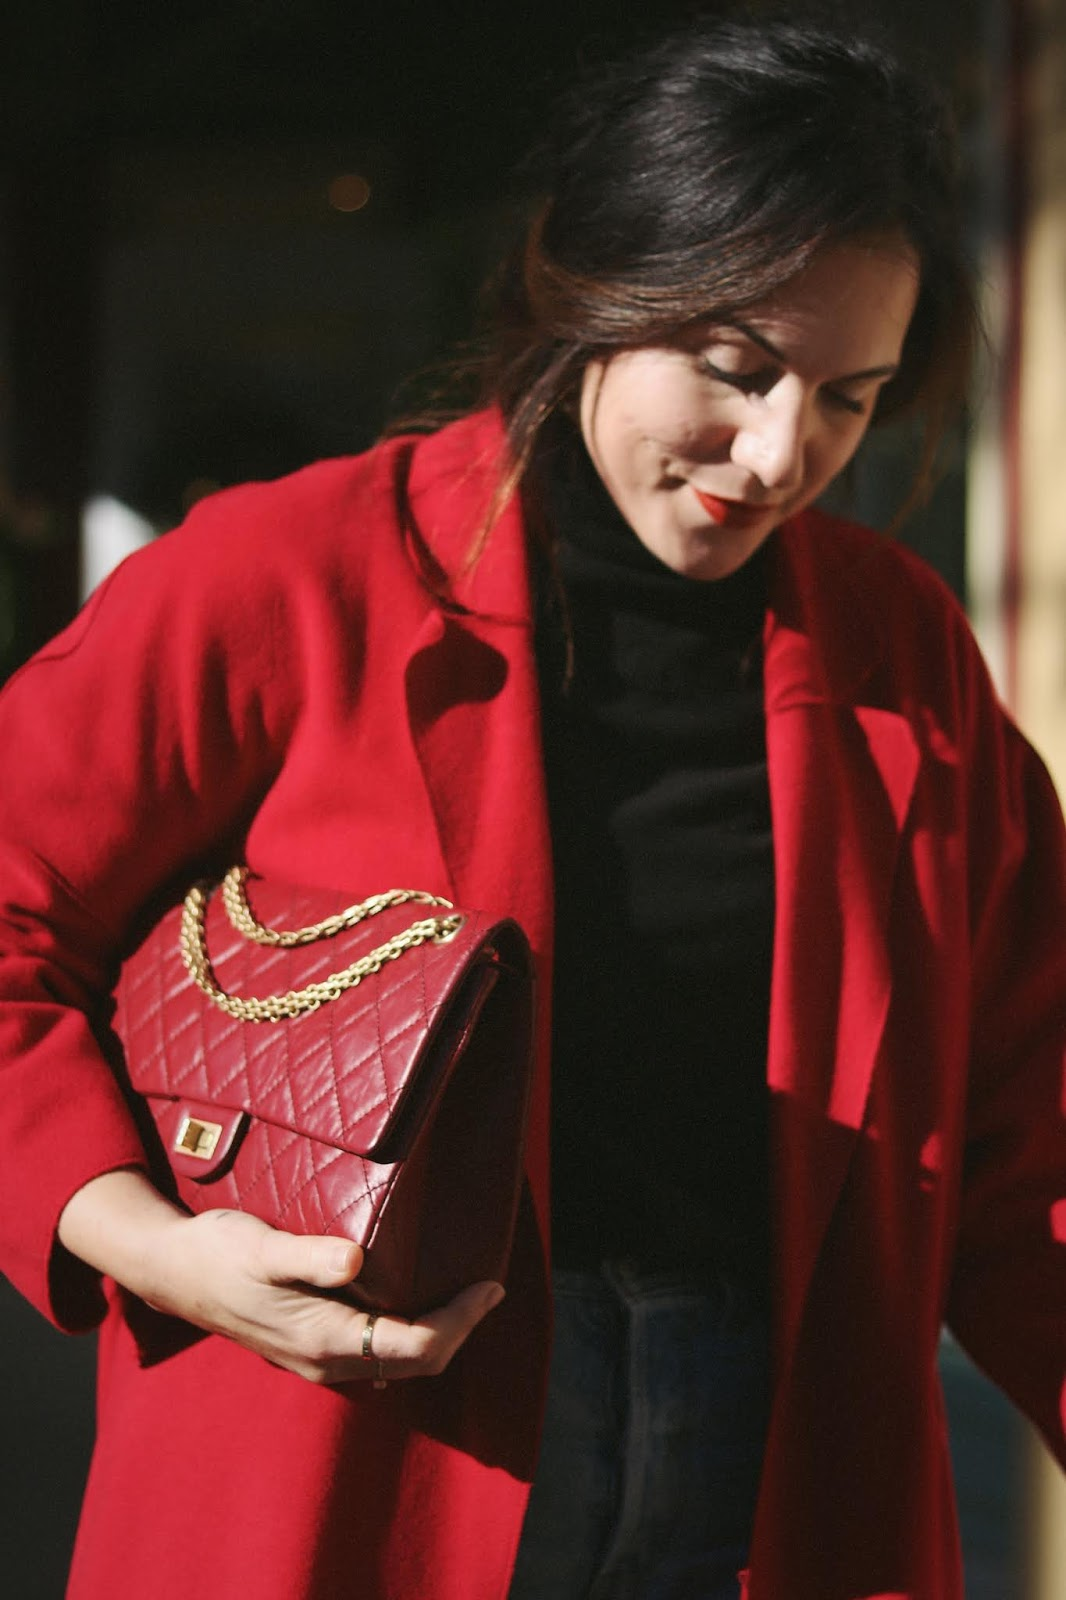 Red wool coat outfit le chateau italian loafers vancouver fashion blogger aleesha harris chanel 255 bag